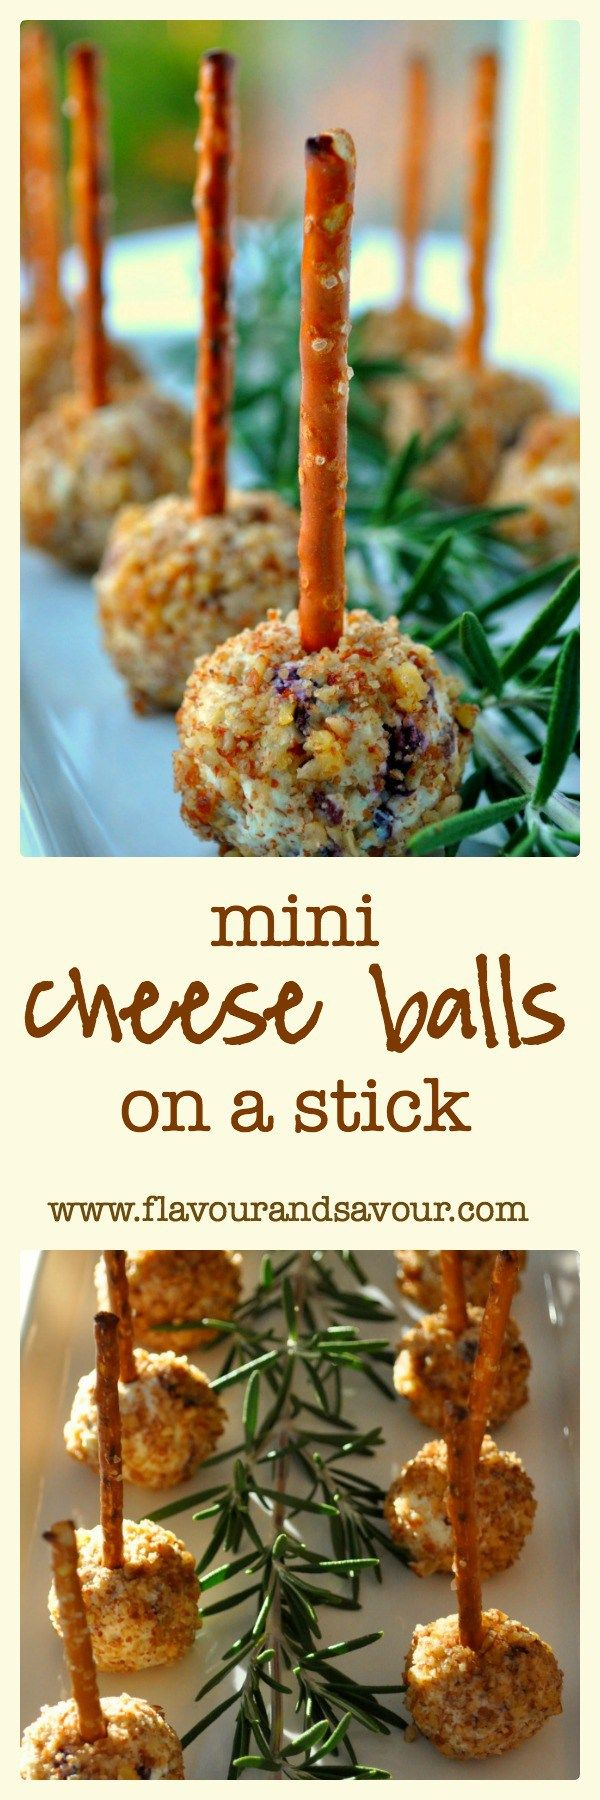 mini cheese balls on a stick rezept christmas recipes pinterest h ppchen essen und. Black Bedroom Furniture Sets. Home Design Ideas